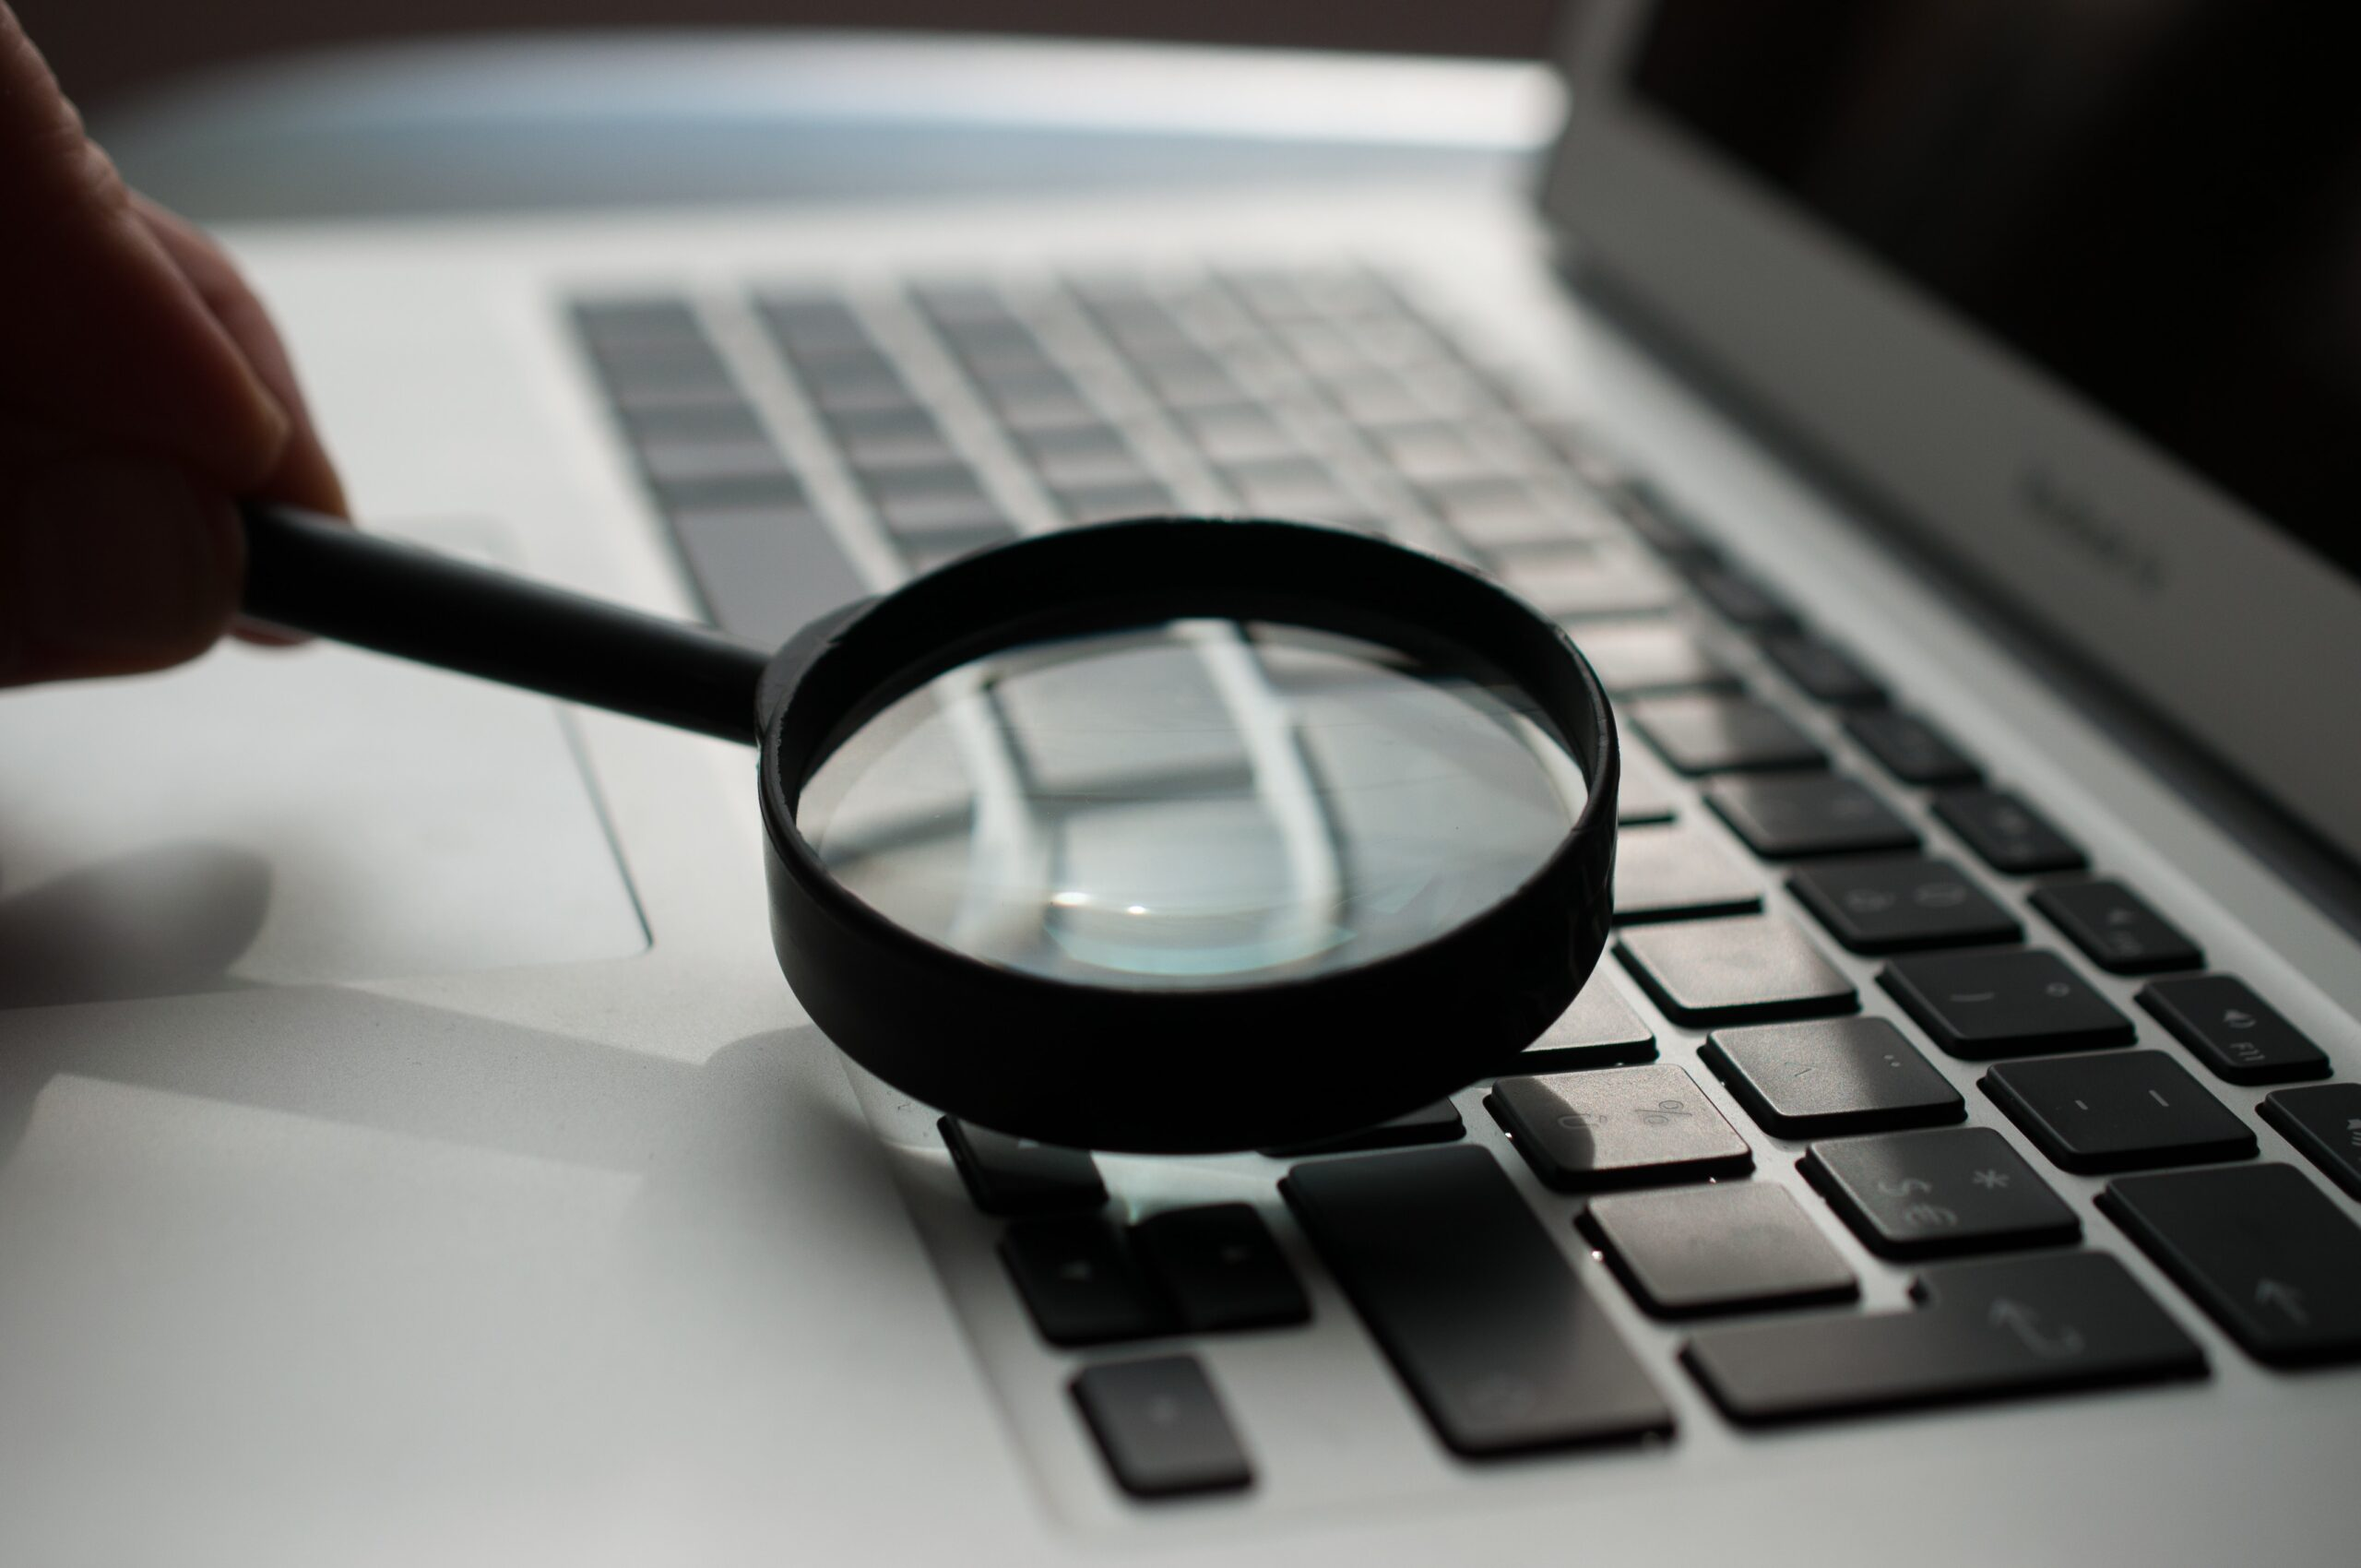 Online Proctoring And Protecting Student Privacy